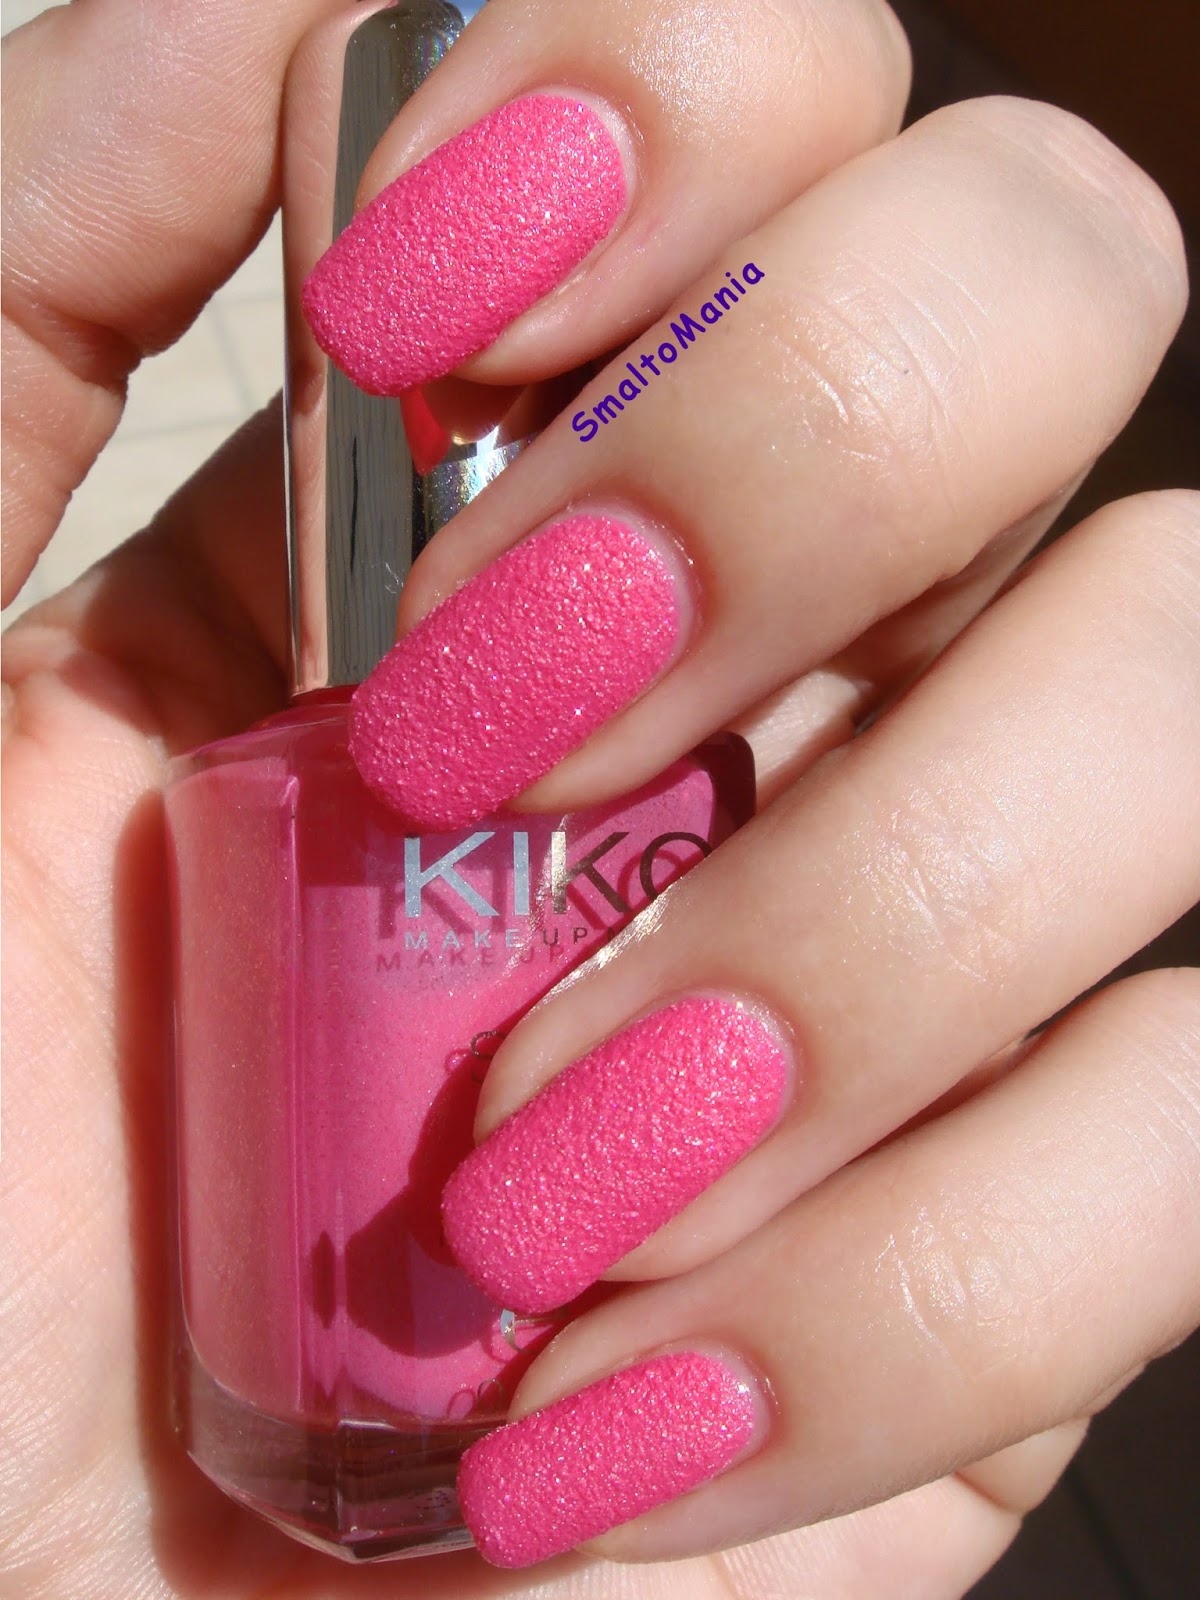 Kiko Sugar Mat n.452 Watermelon